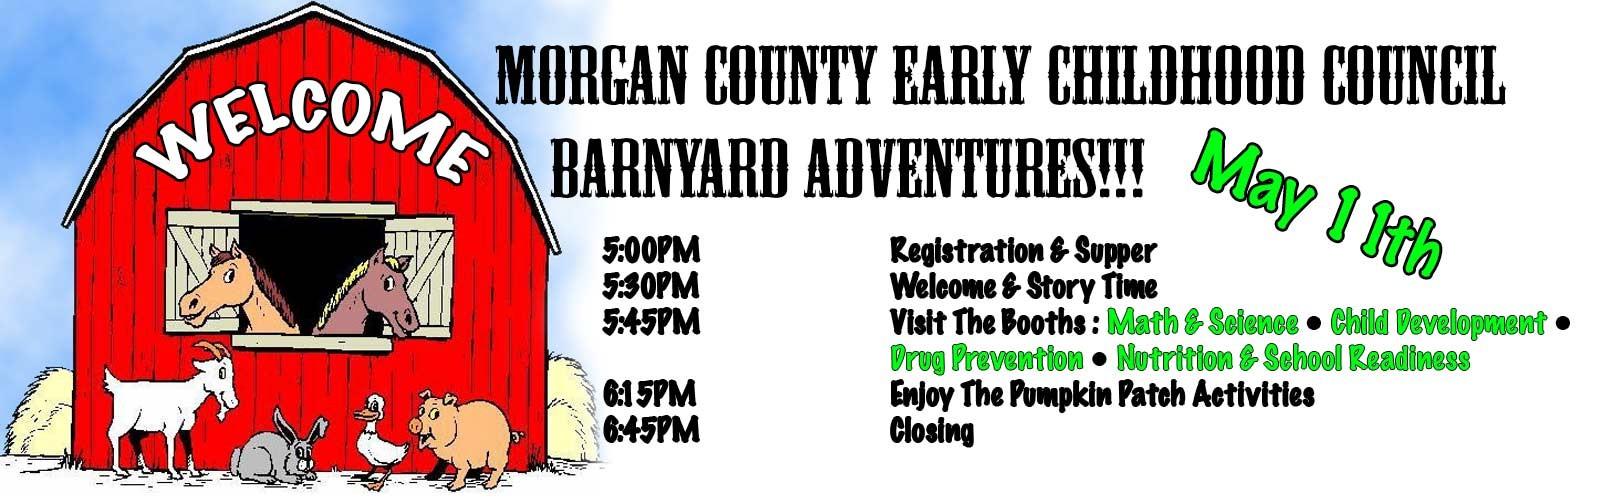 Barnyard Adventures May 11th